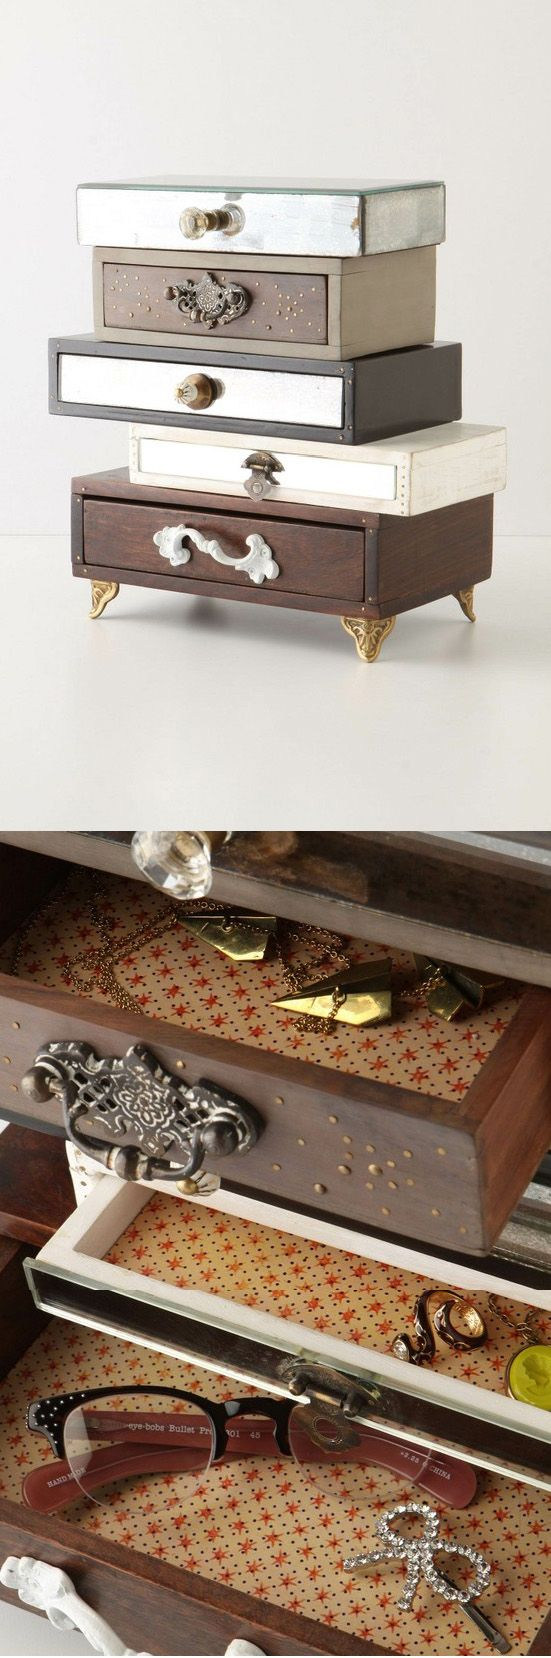 HACKED :: Topsy-Turvy Jewelry Box :: $298 | Anthropologie :: This could be done w/ cheap pine boxes from Michael's or even cigar boxes. Paint/stain them first, then line the drawers w/ pretty shelf paper, wallpaper, or decoupage scrapbook paper. Glue or screw in cute knobs to the outsides & glue all the boxes together (off center, of course) w/ wood glue. Finally, nail tiny gold nails into the drawers like shown in the photo. Done! & it's one of a kind! I'd say $50 or less. | #hack…